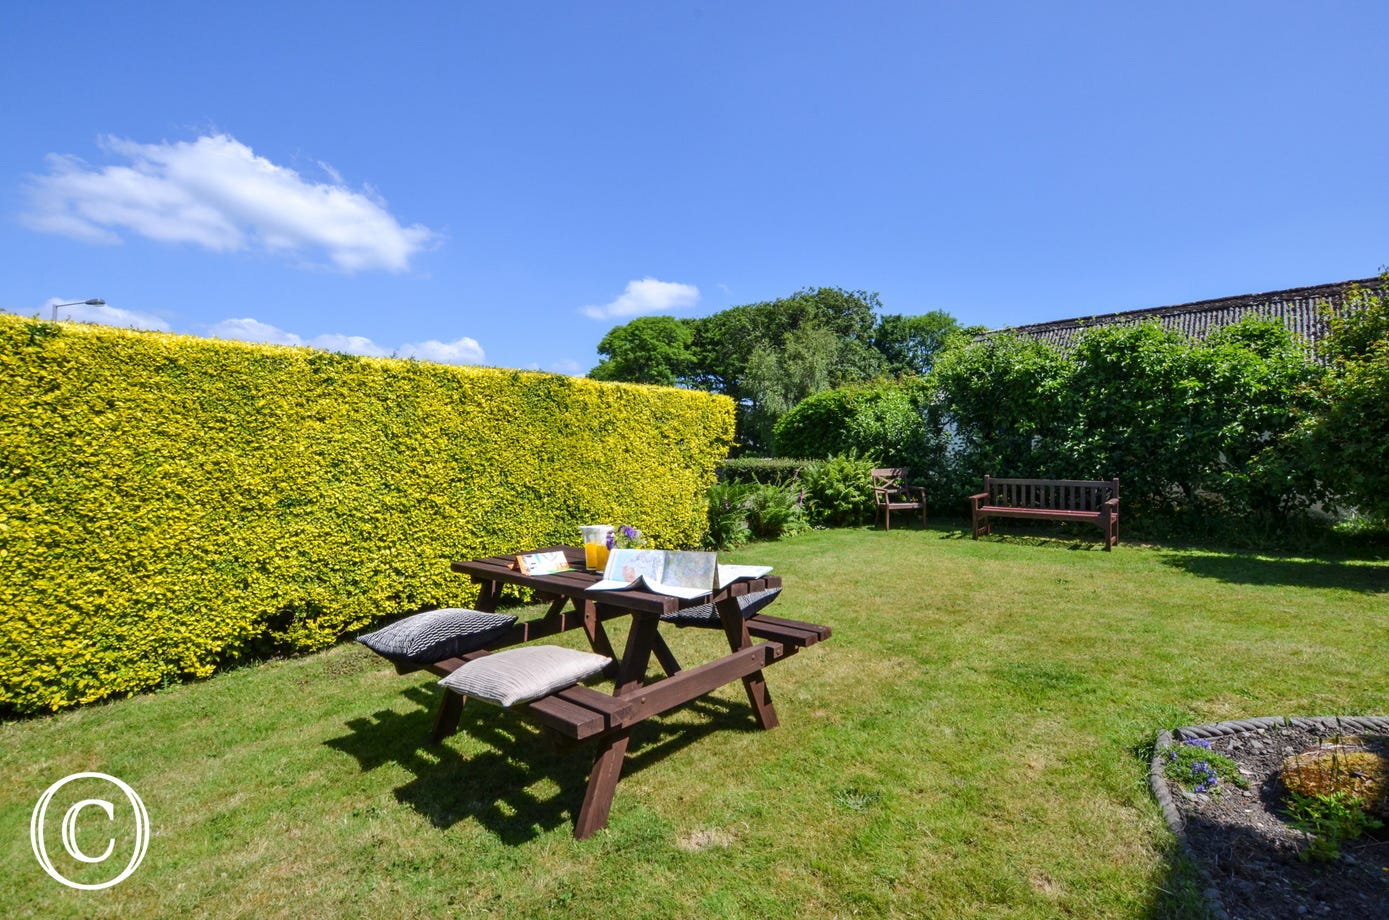 Sheltered by hedges, enjoy outdoor eating in this great garden